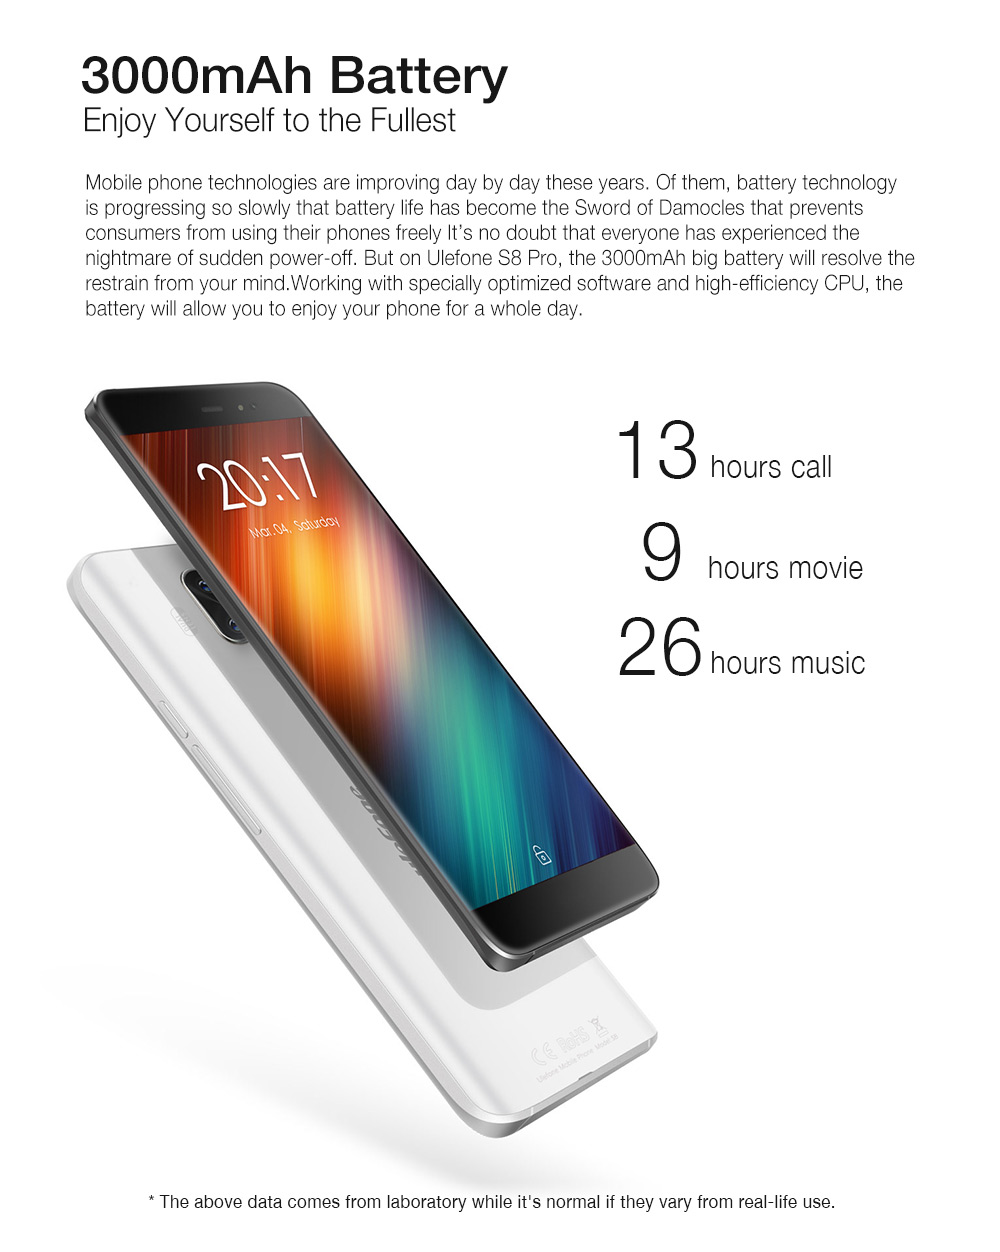 Ulefone S8 Pro Smartphone Dual Cameras Mobile Phone 5.3 inch HD MTK6737 Quad Core Android 7.0 2GB+16GB Fingerprint ID Cellphone - 5